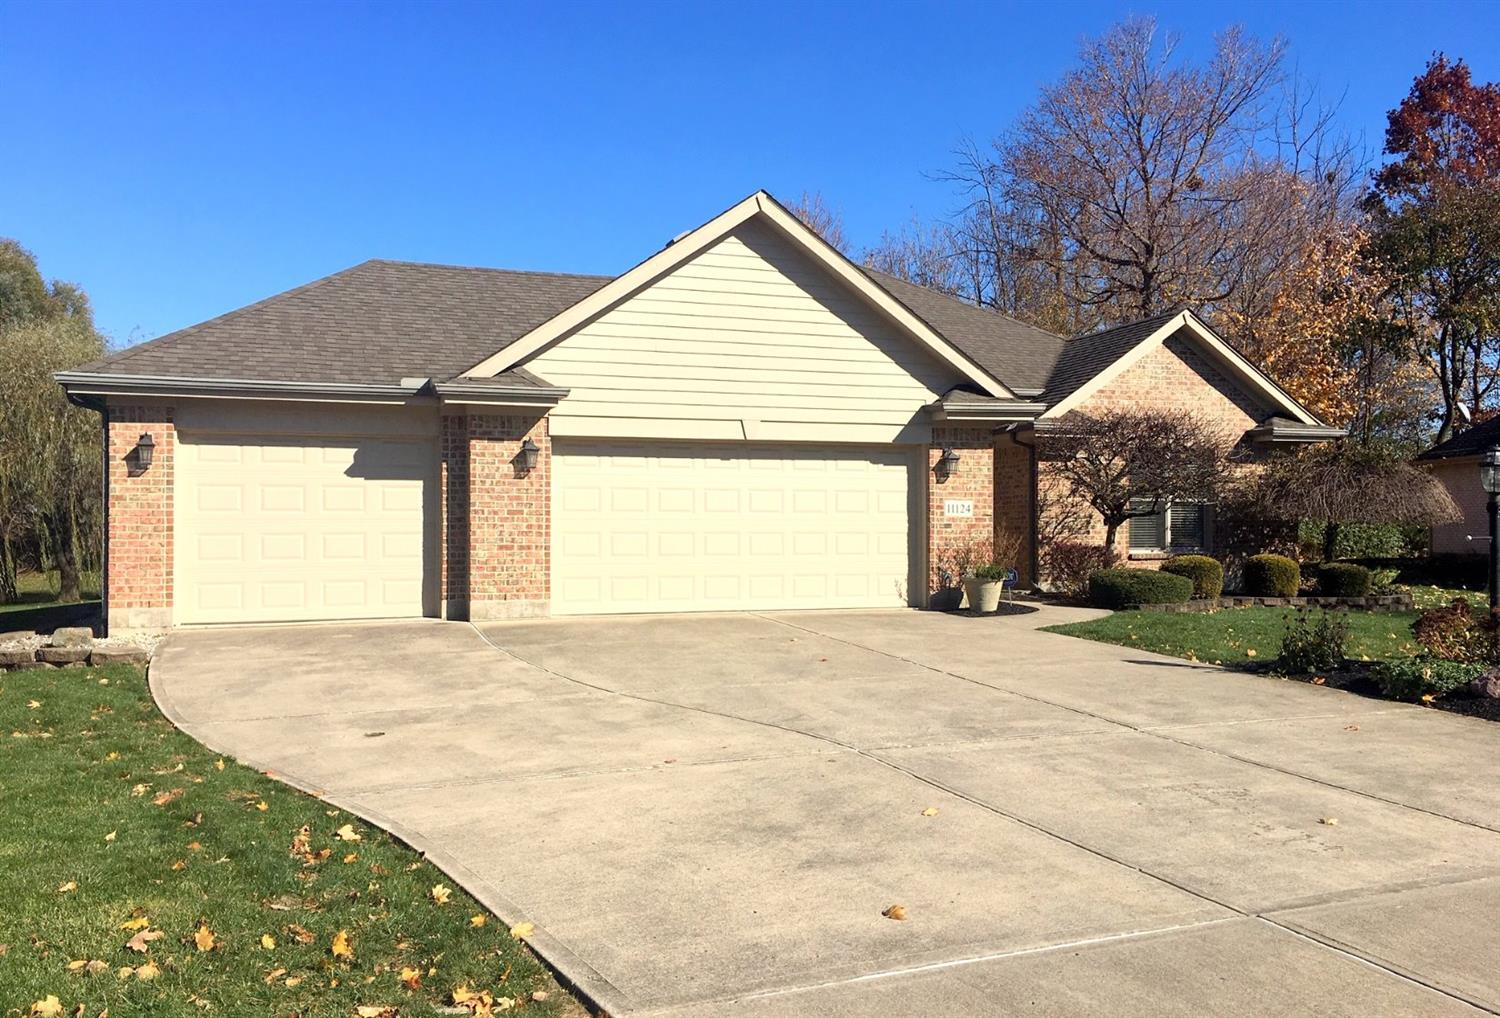 11124 Old Tappan Wy Montgomery Co., OH